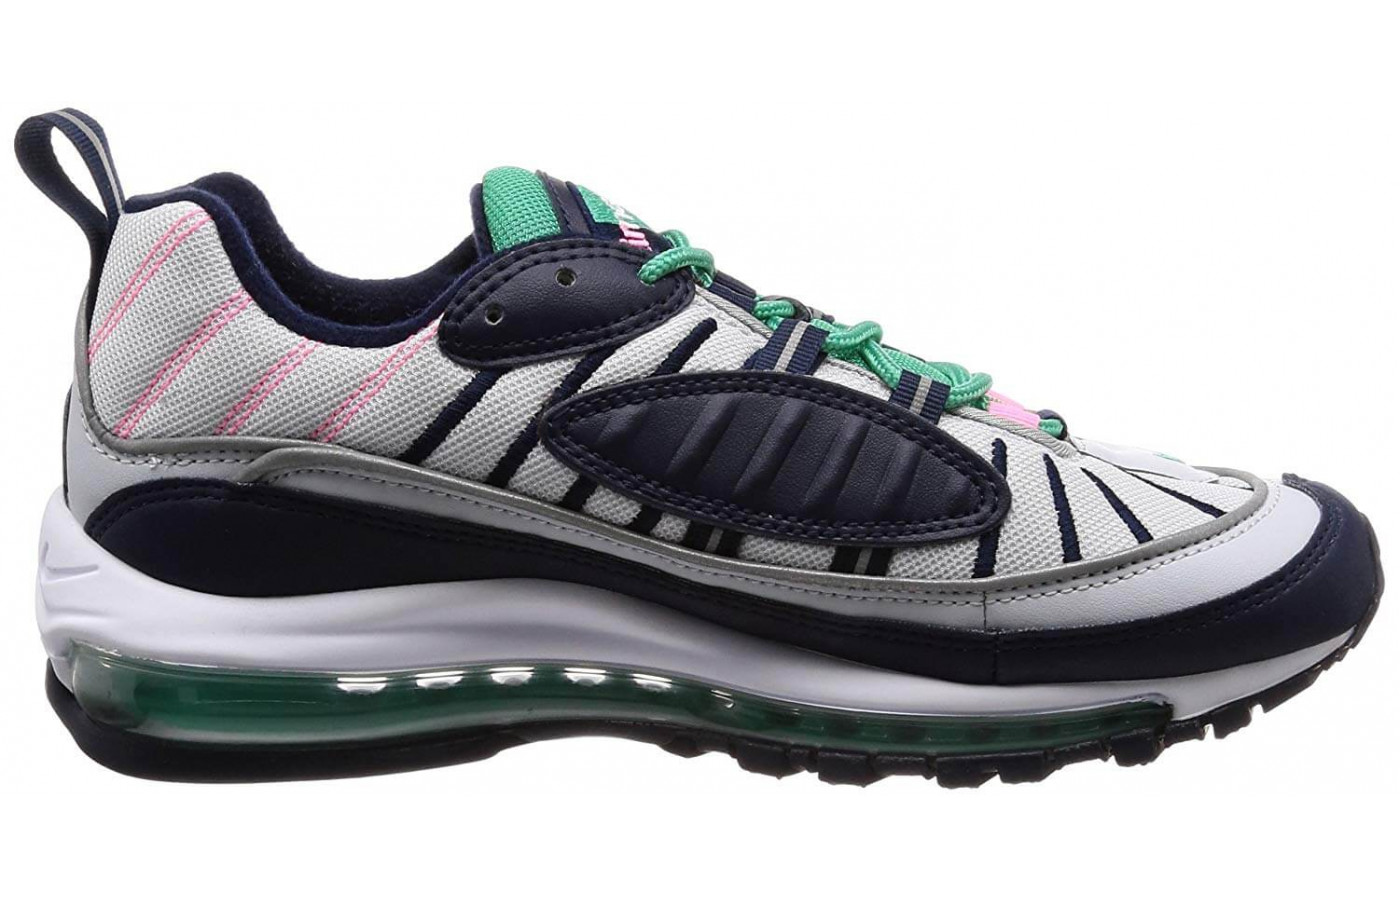 separation shoes 10f55 6f8cd ... Nike Air Max 98 side ...